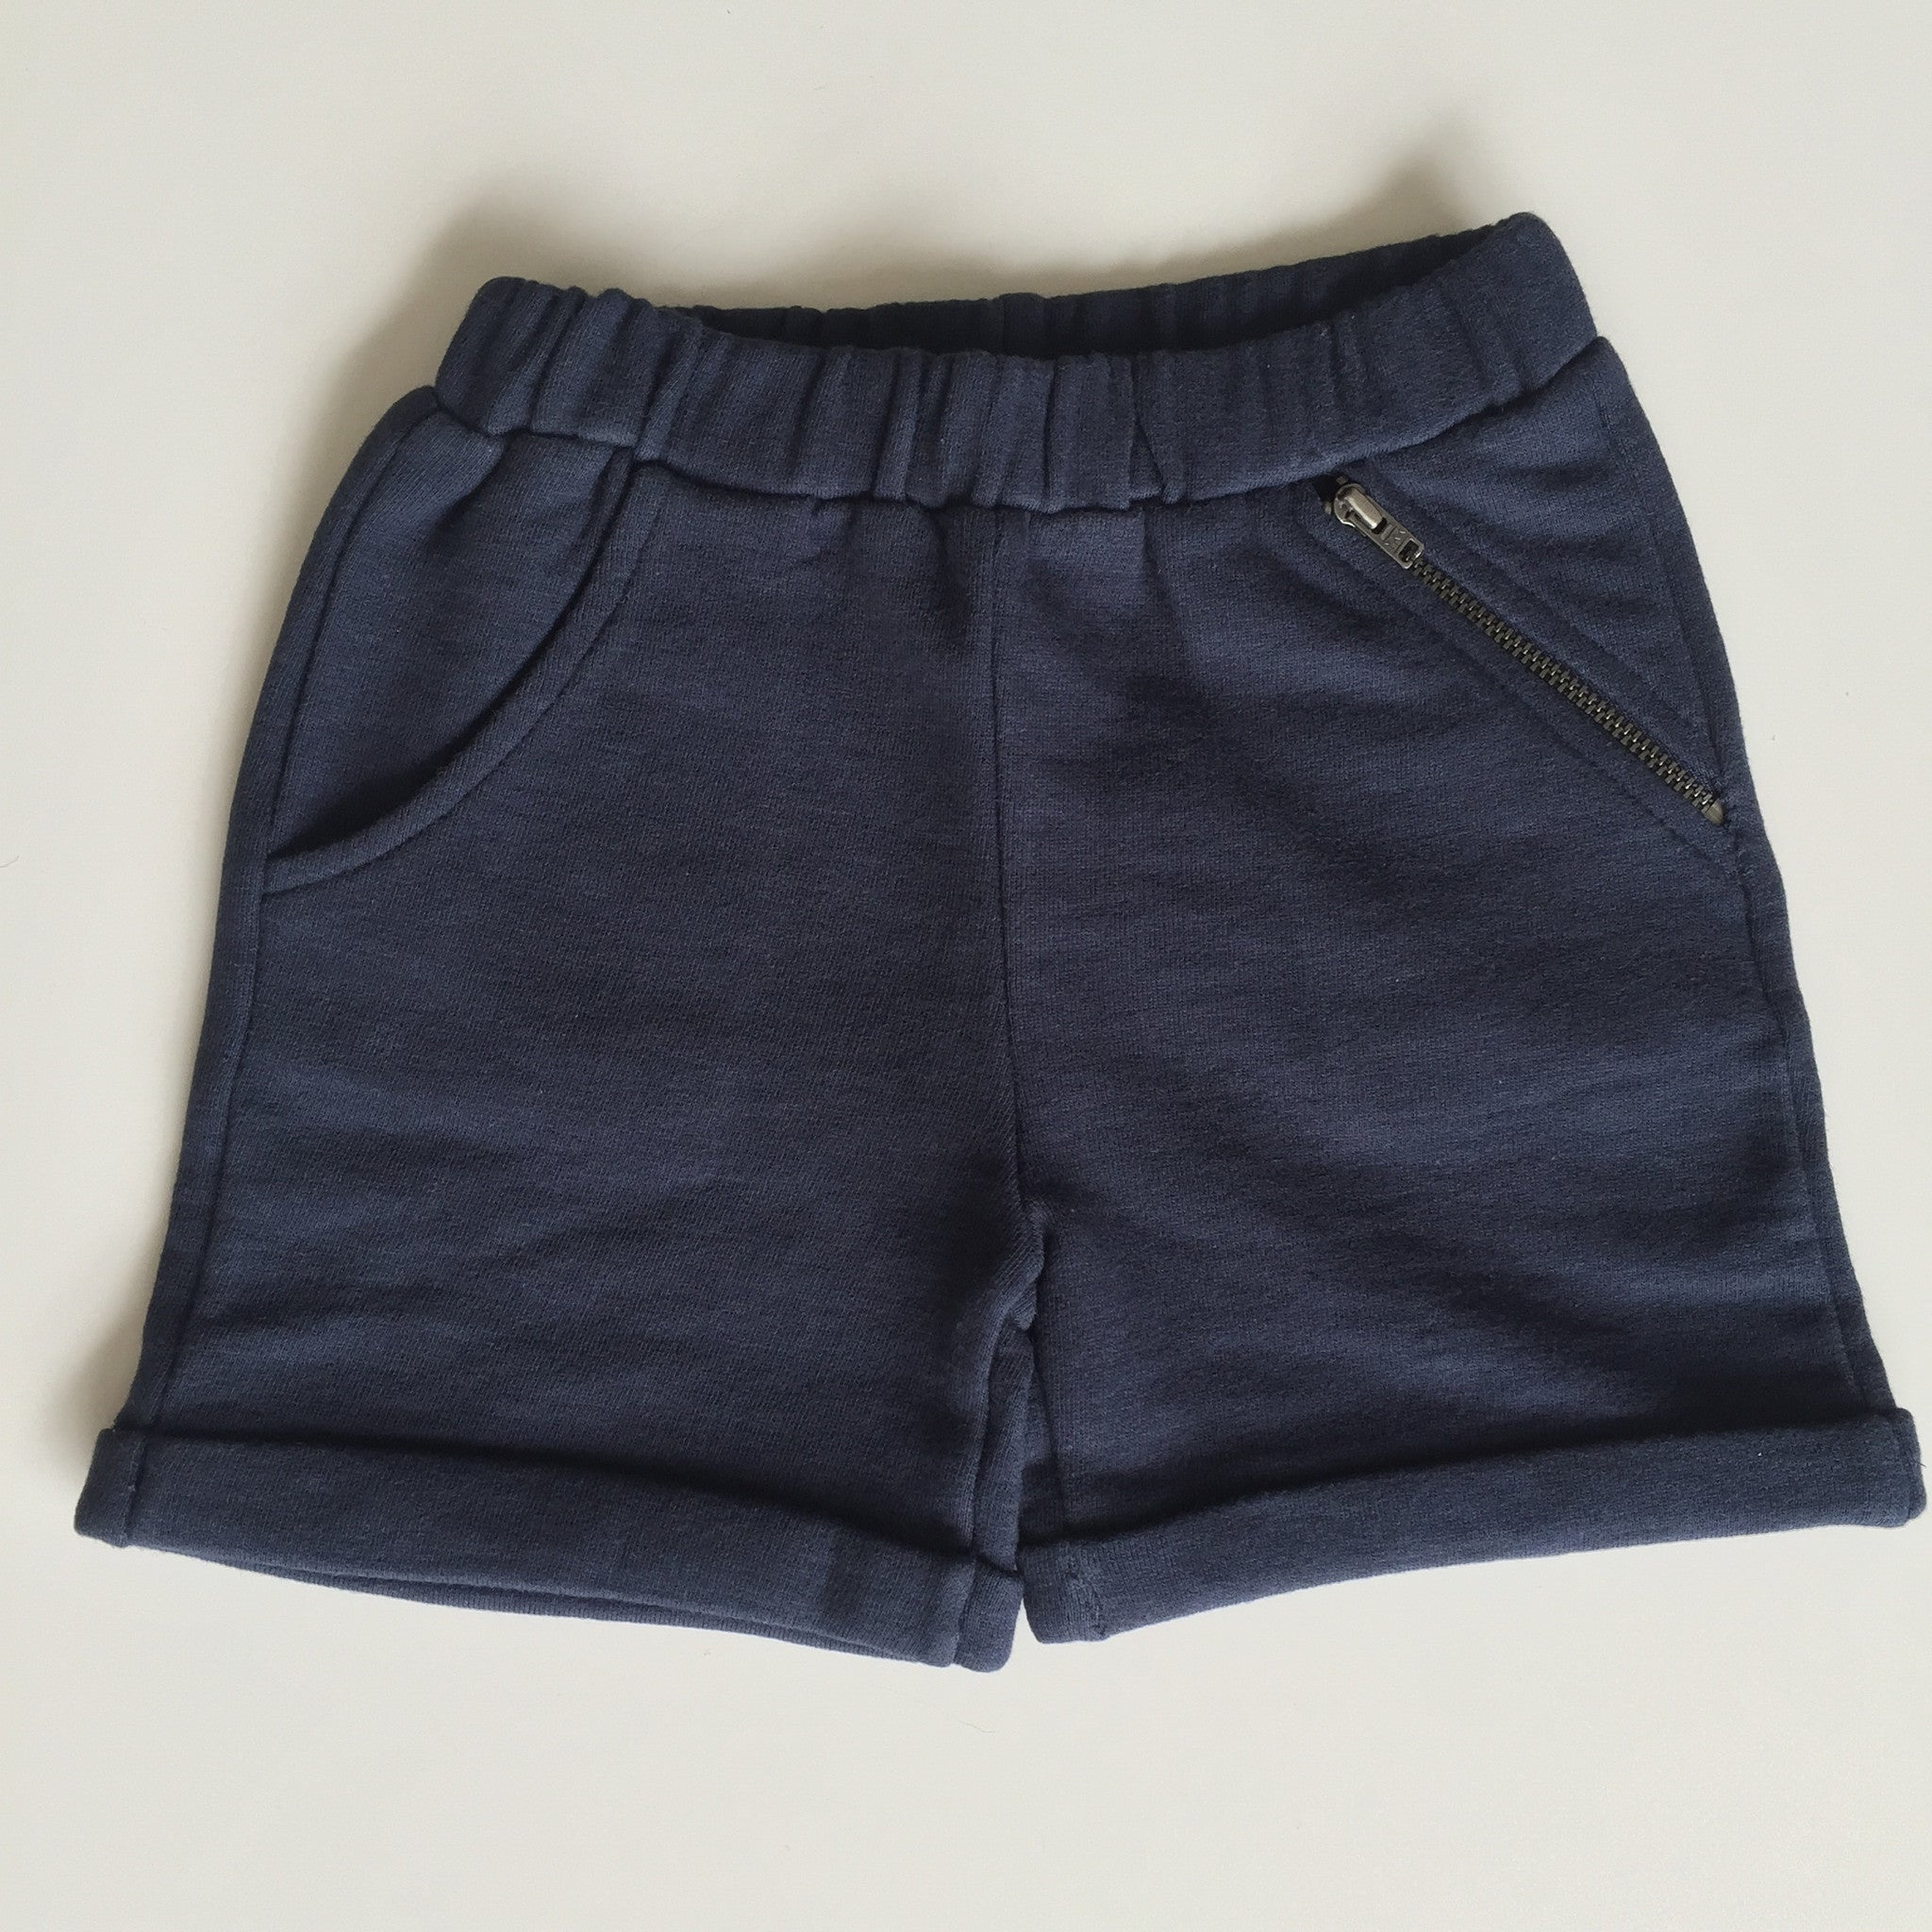 byClaRa - Arda Shorts - Blue Nights